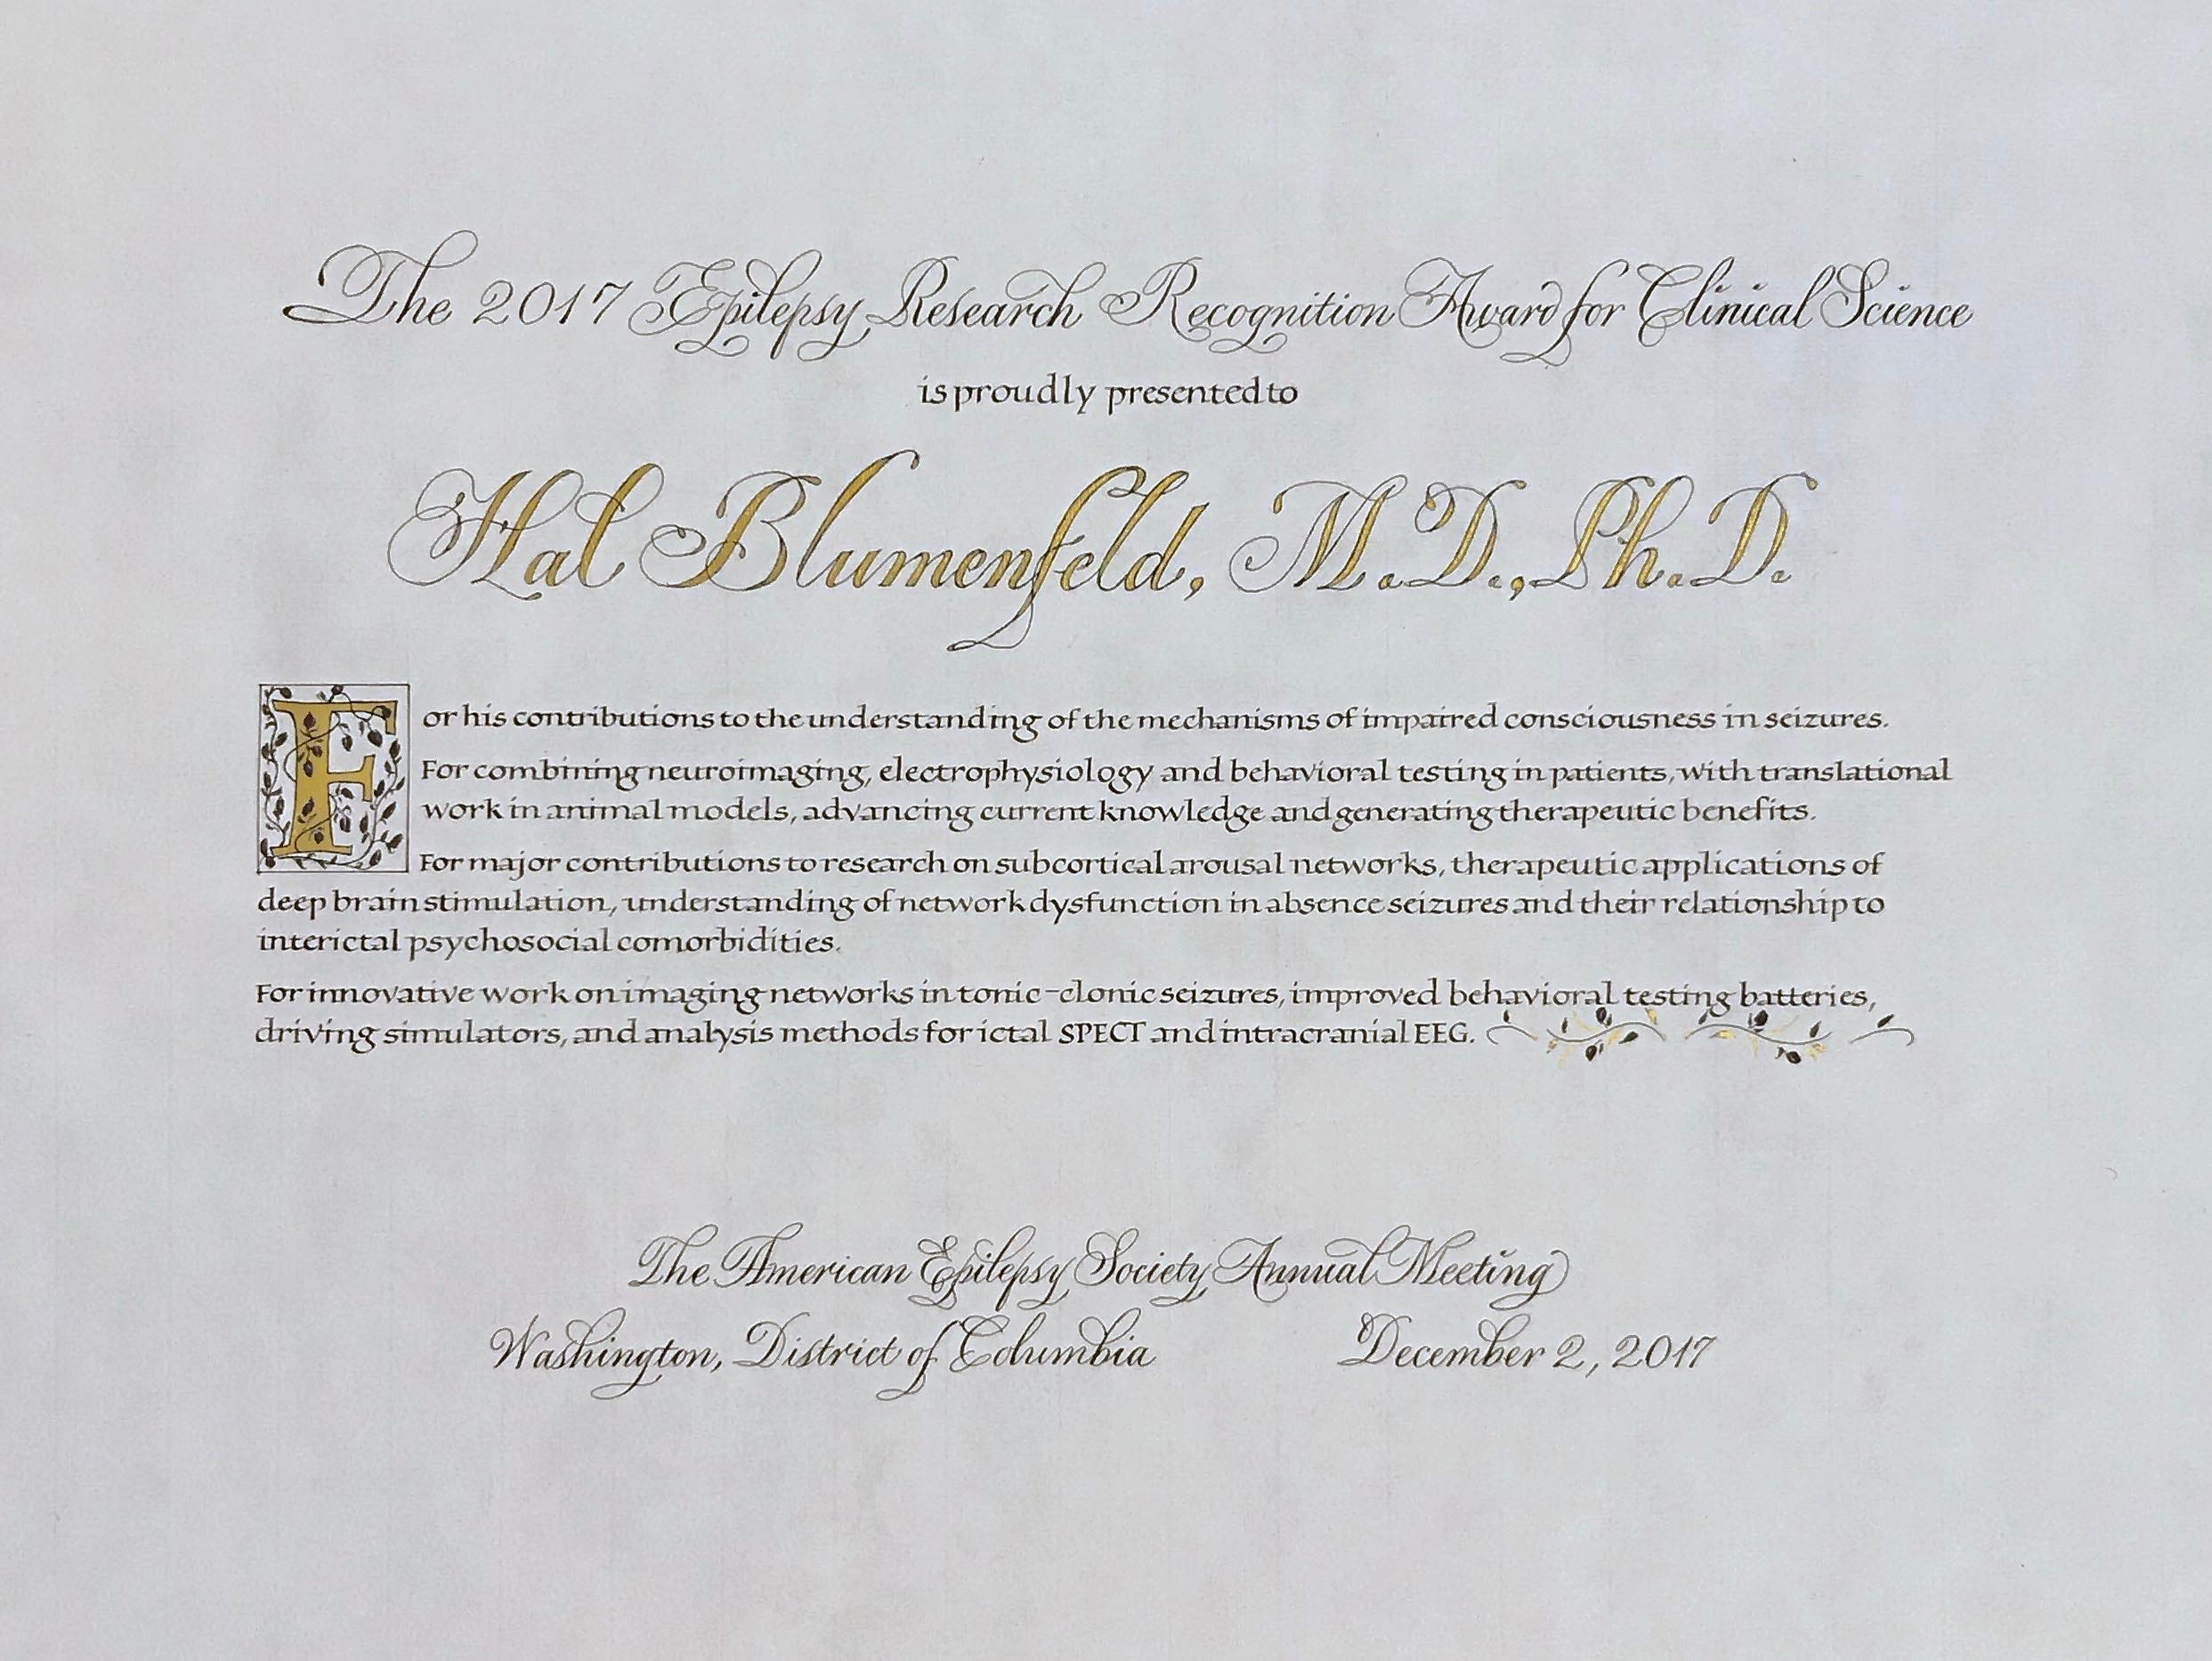 Certificates created and designed annually for the American Epilepsy Society